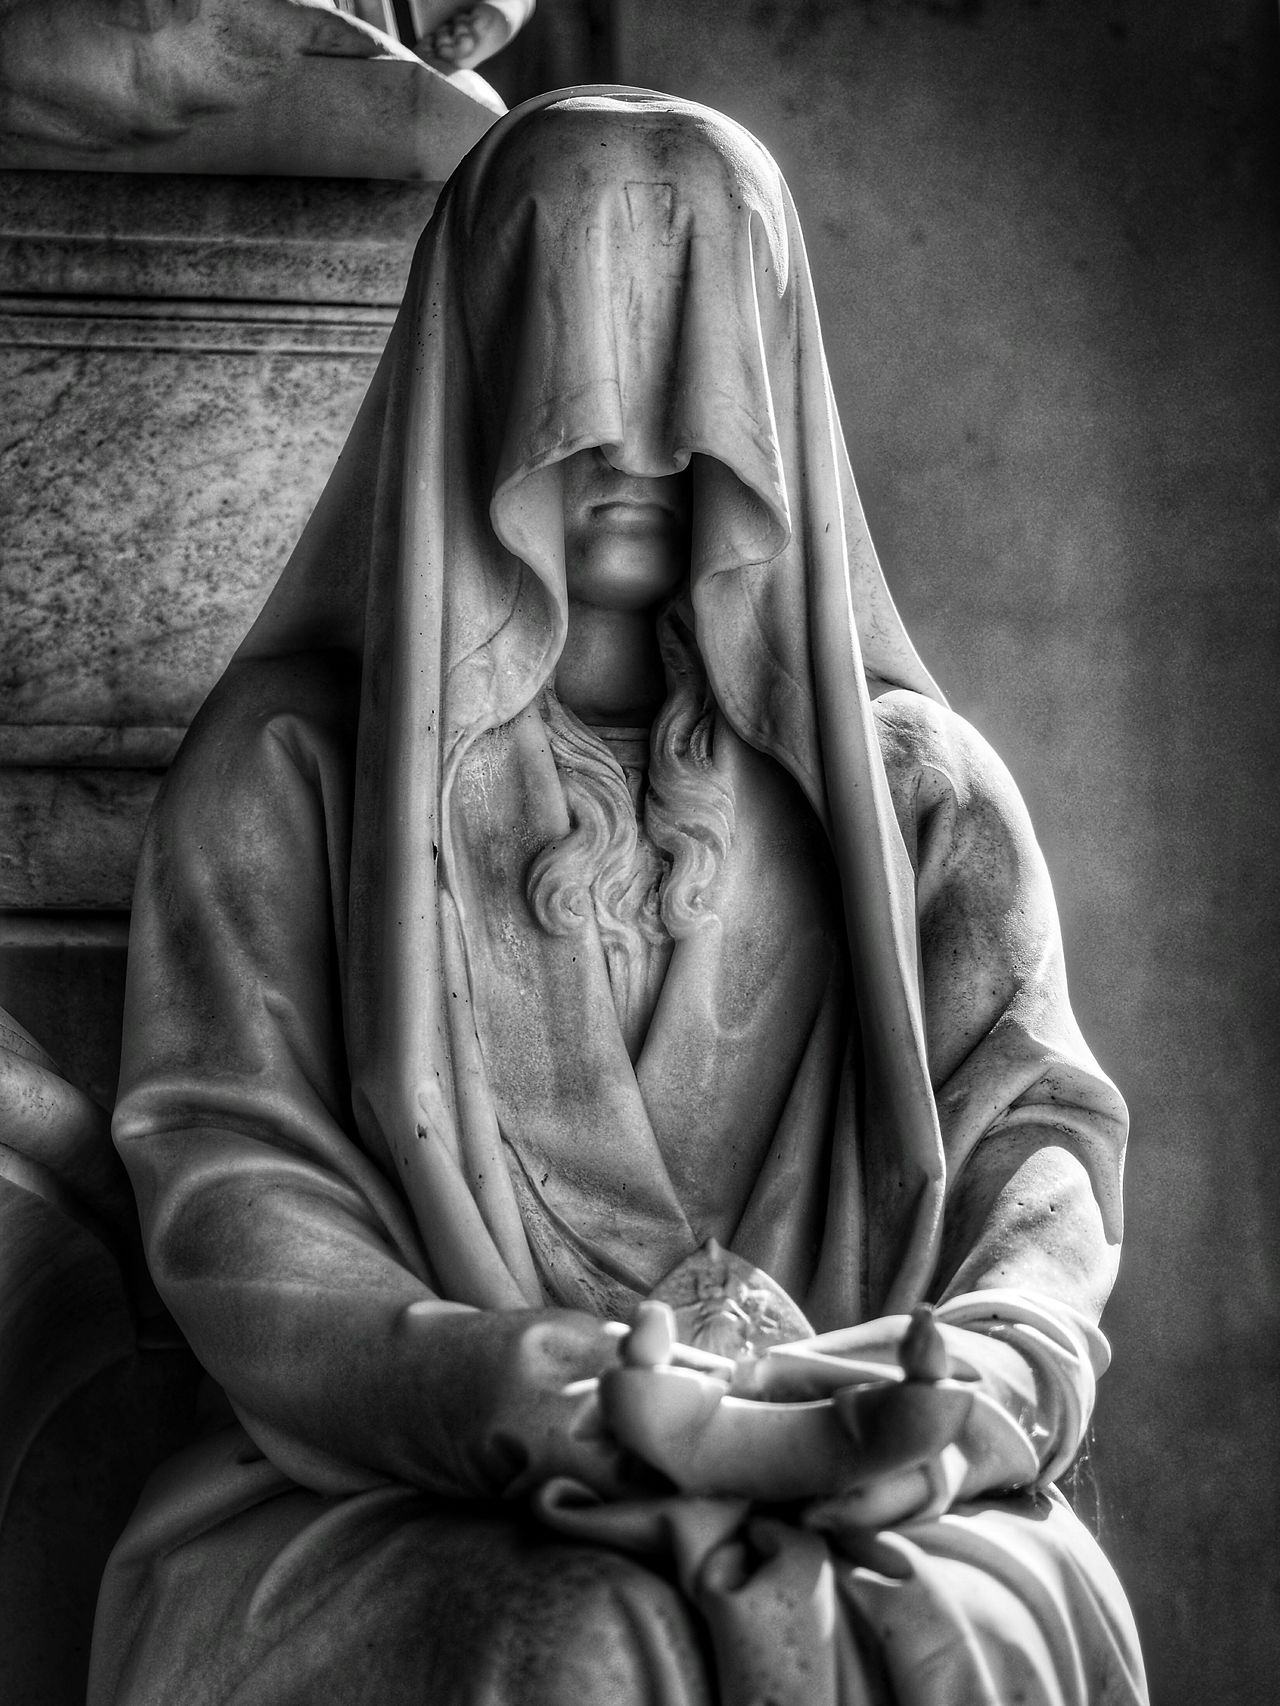 Religion Spirituality Statue Cemetery Cemetery_shots Cemetery Photography Graveyard Graveyard Beauty Artphotography Lightandshadow Blackandwhite Black & White Blackandwhite Photography EyeEm EyeEm Best Shots EyeEm Gallery Illuminated Artistic Expression Olympus OM-D E-M5 Mk.II Light And Shadow Light In The Darkness